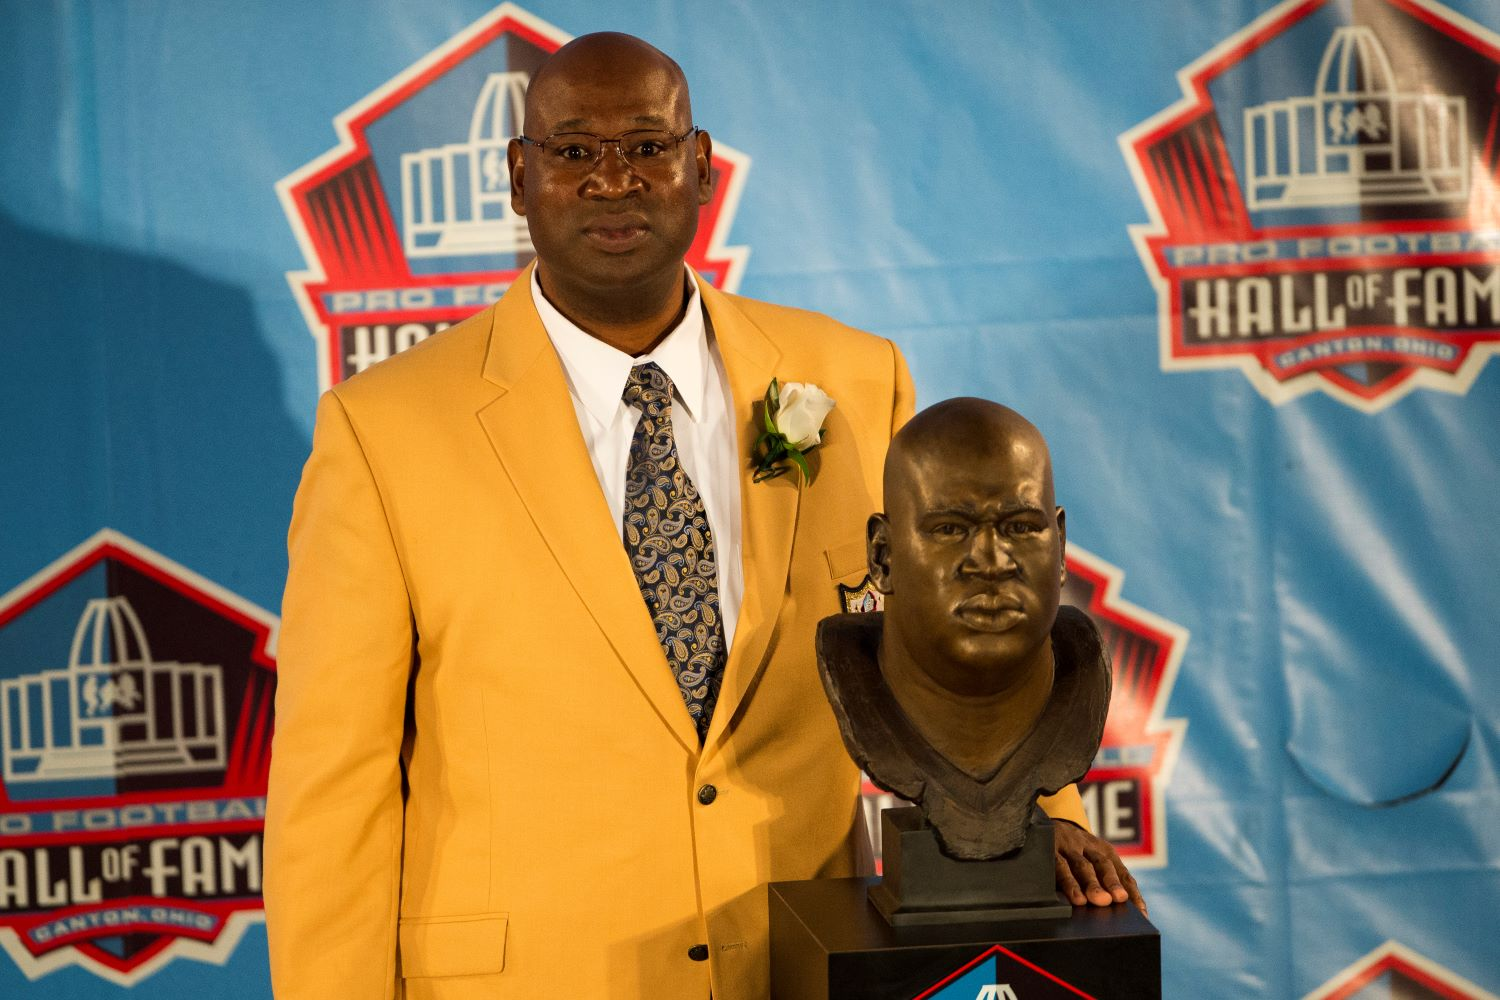 Cortez Kennedy got inducted into the Pro Football Hall of Fame in 2012. Just five years later, the Seahawks legend died at the age of 48.